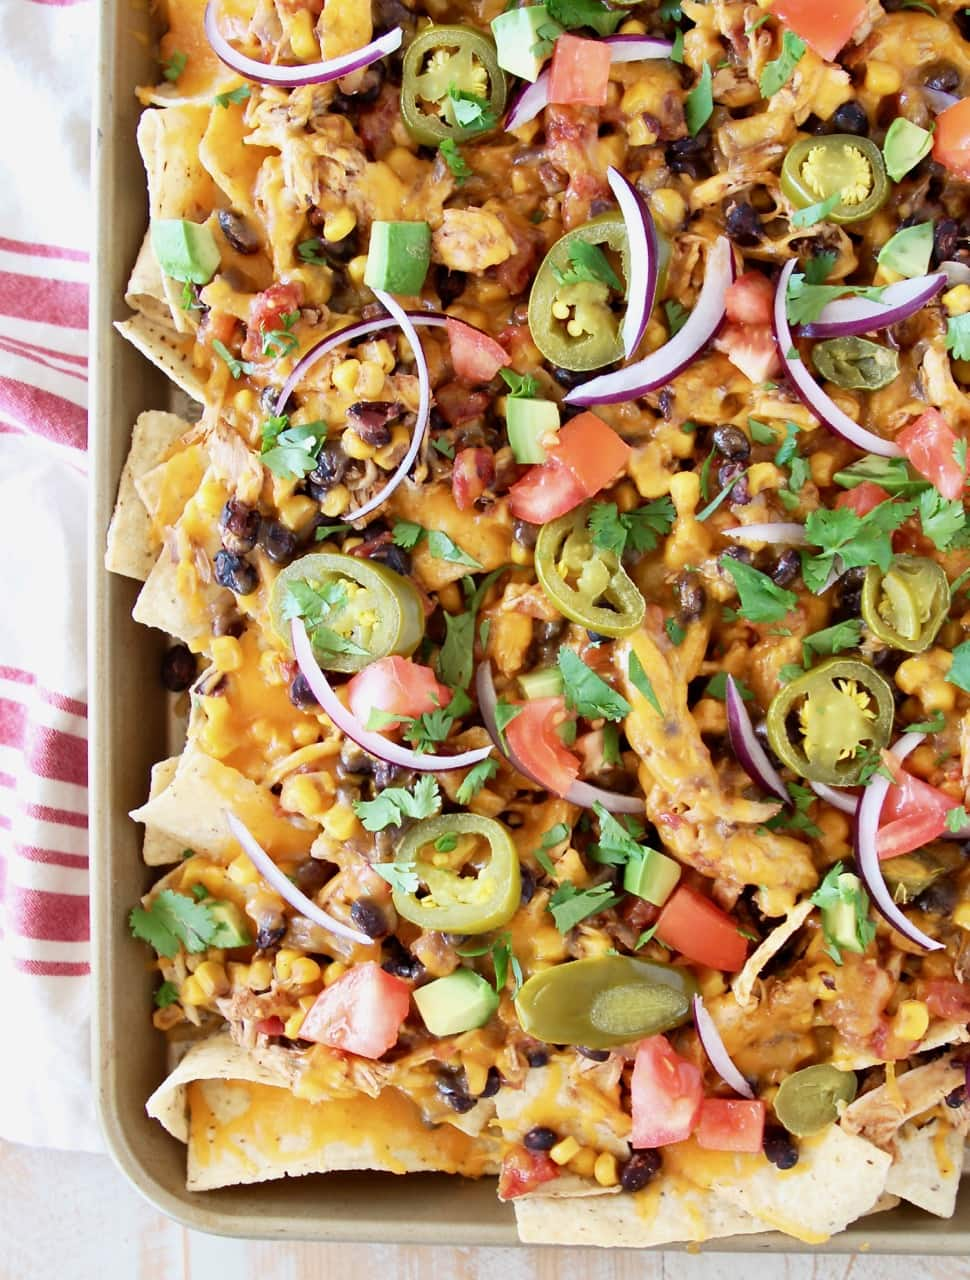 Chicken Nachos on sheet pan topped with jalapenos, red onions, tomatoes and cheese, on red and white striped towel